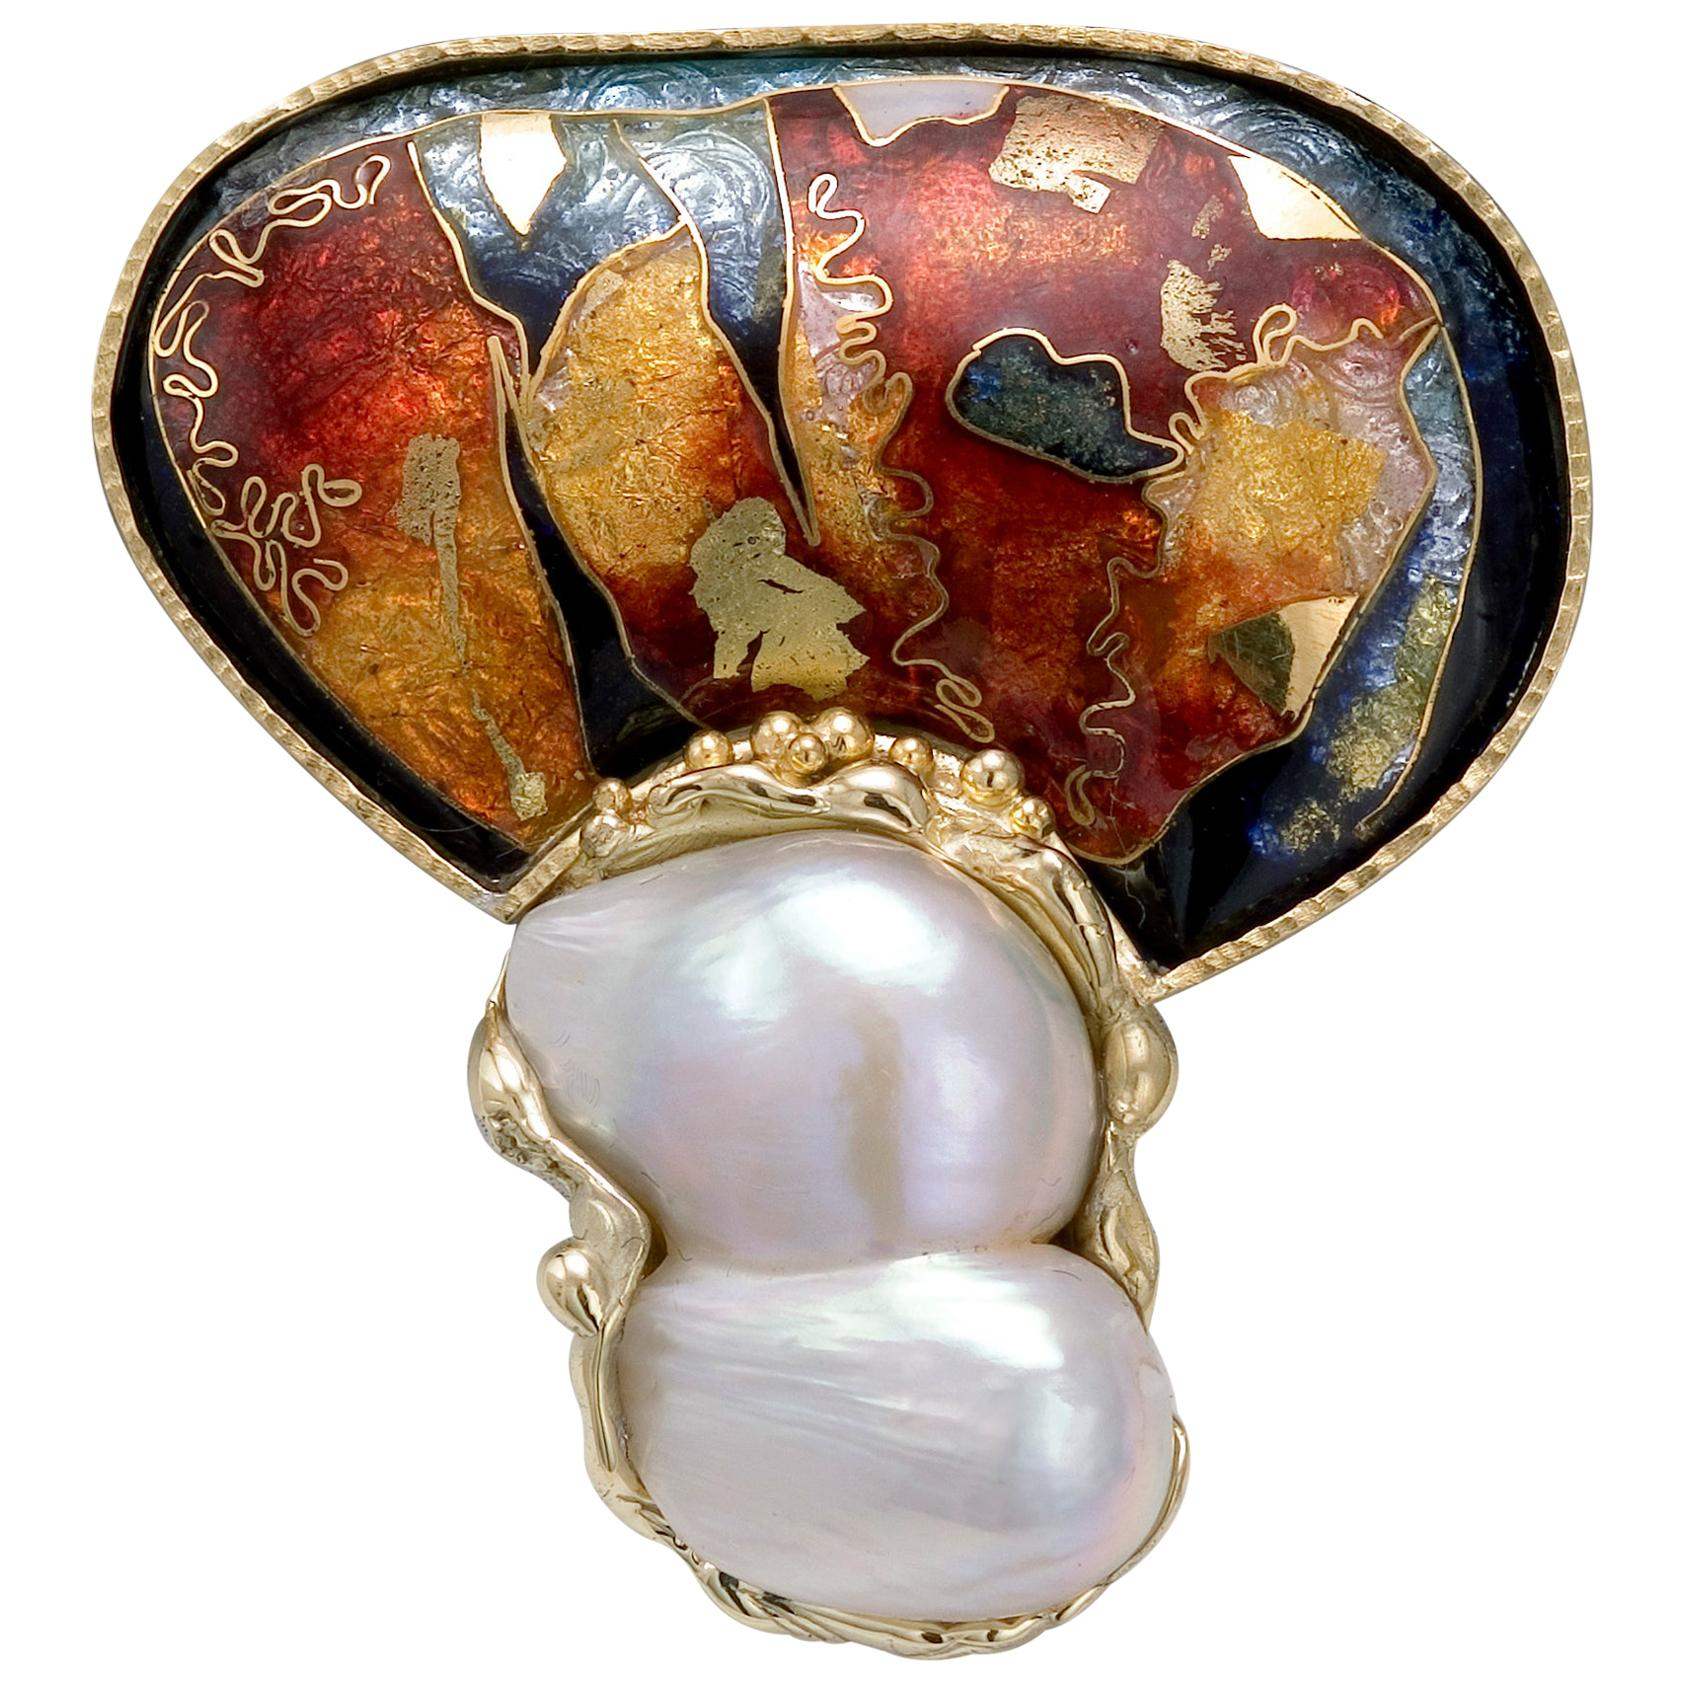 Cloisonné Enamel in 24 and 22 Karat Yellow Gold Pearl Brooch